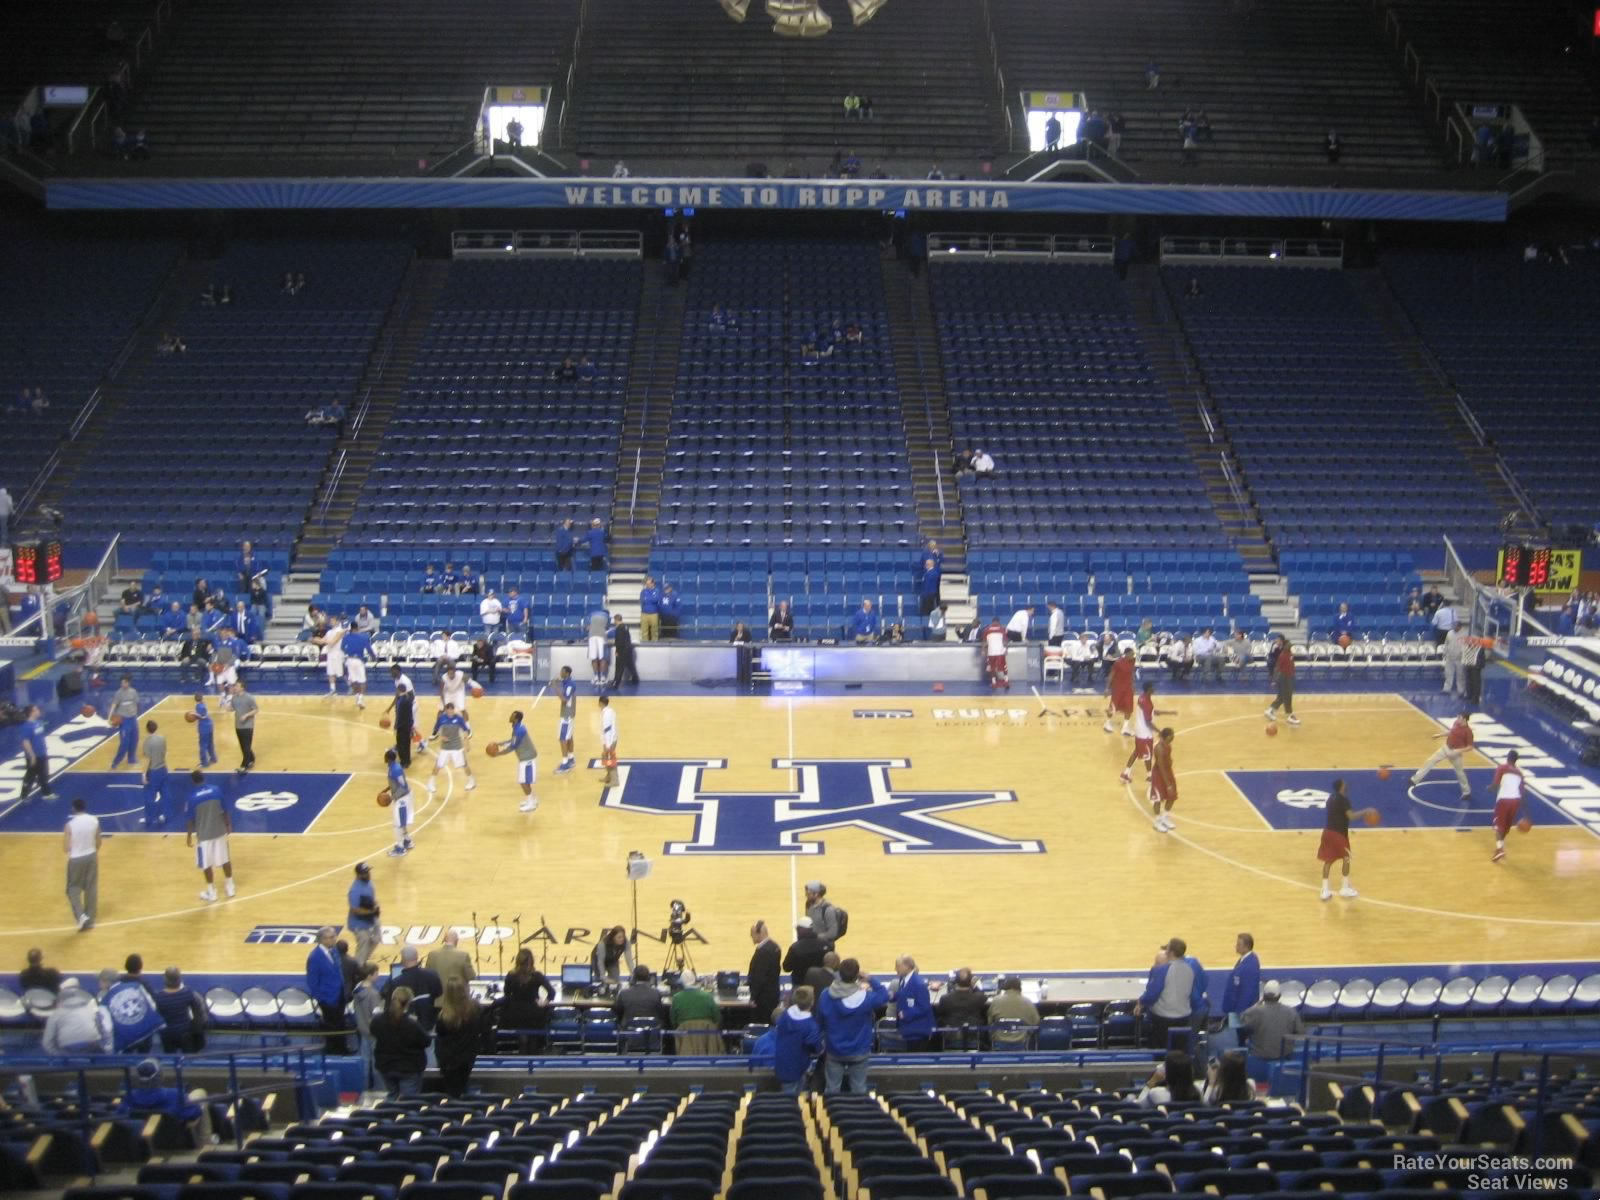 Rupp Arena Section 14 - RateYourSeats.com